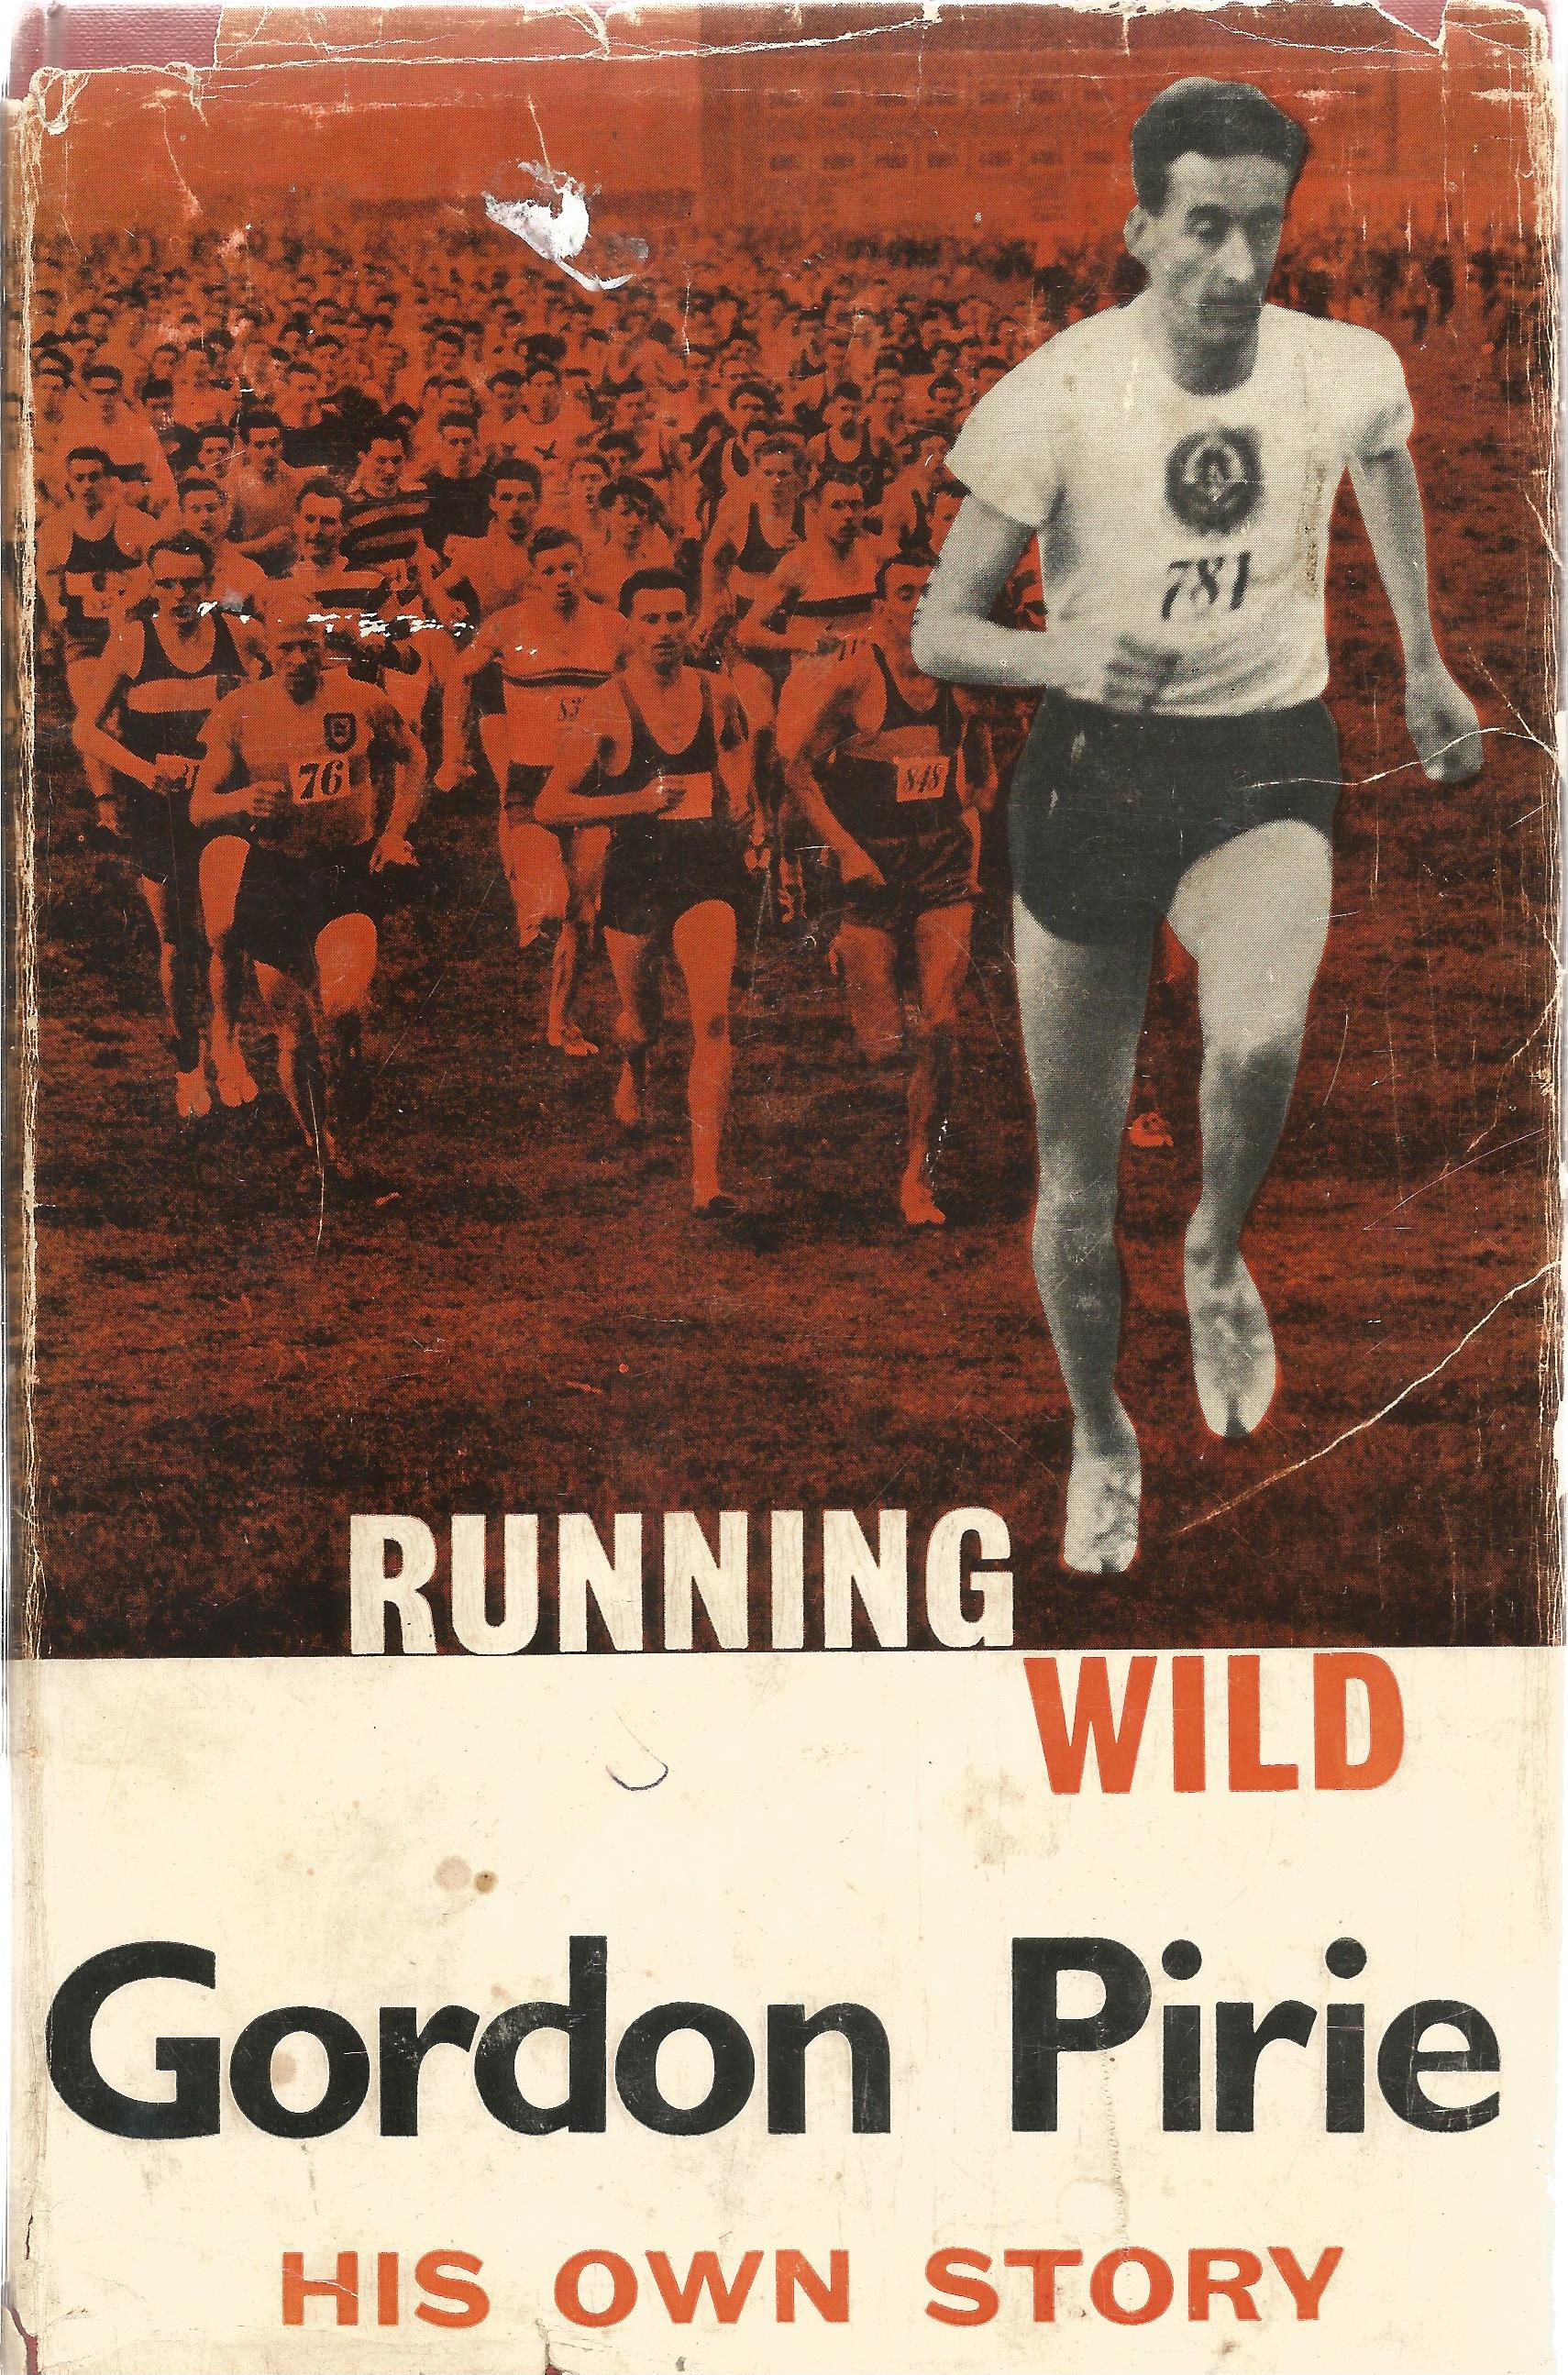 Gordon Pirie Hardback Book Running Wild His own Story 1961 signed by the Author on the Title Page